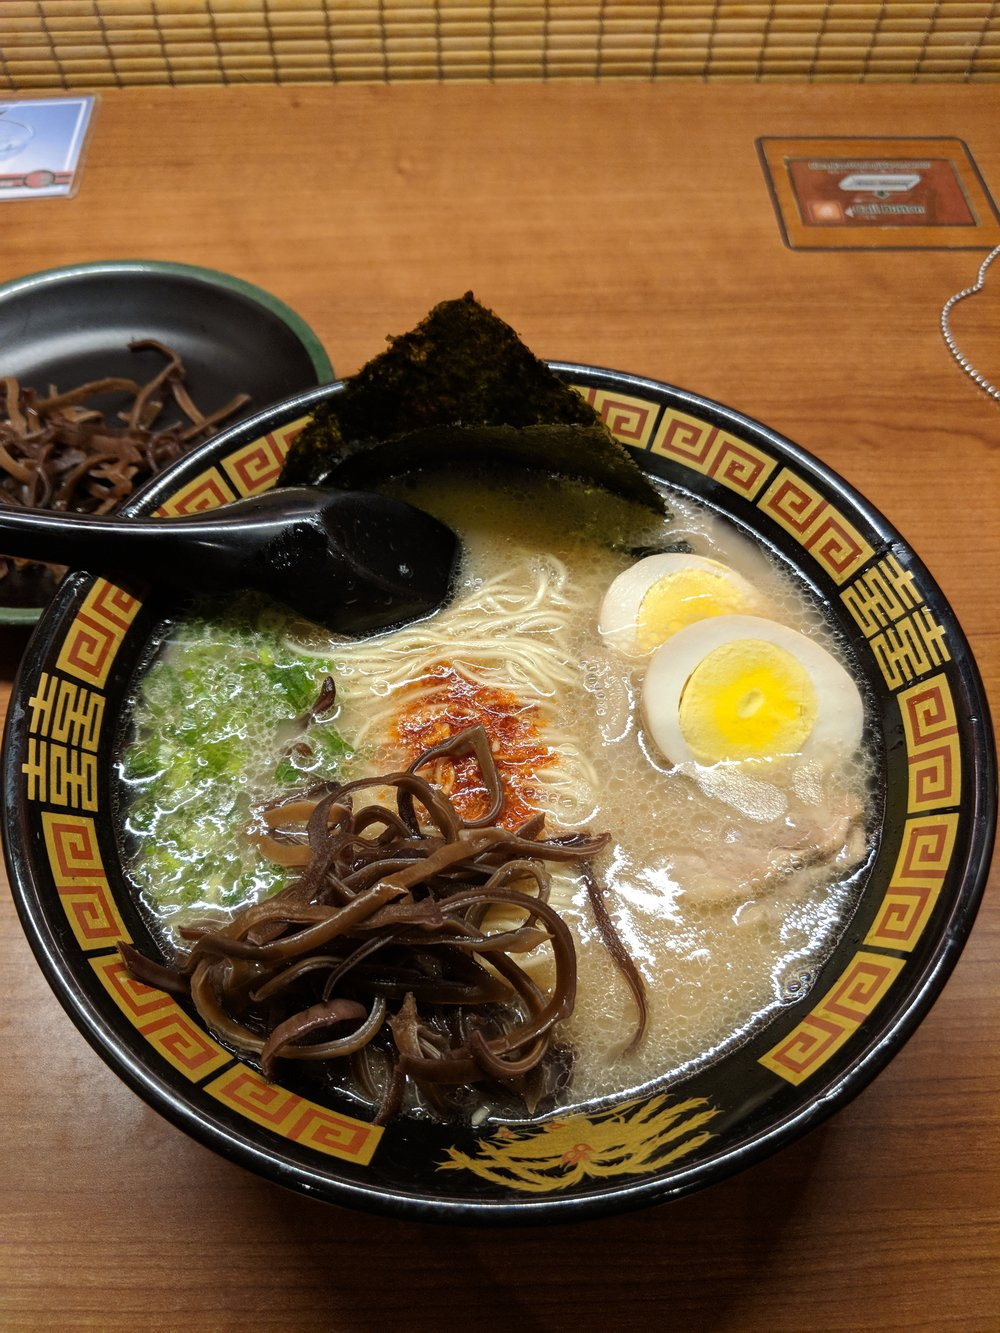 Tonkotsu Ramen - Quiet & relaxing dining at Ichiran.